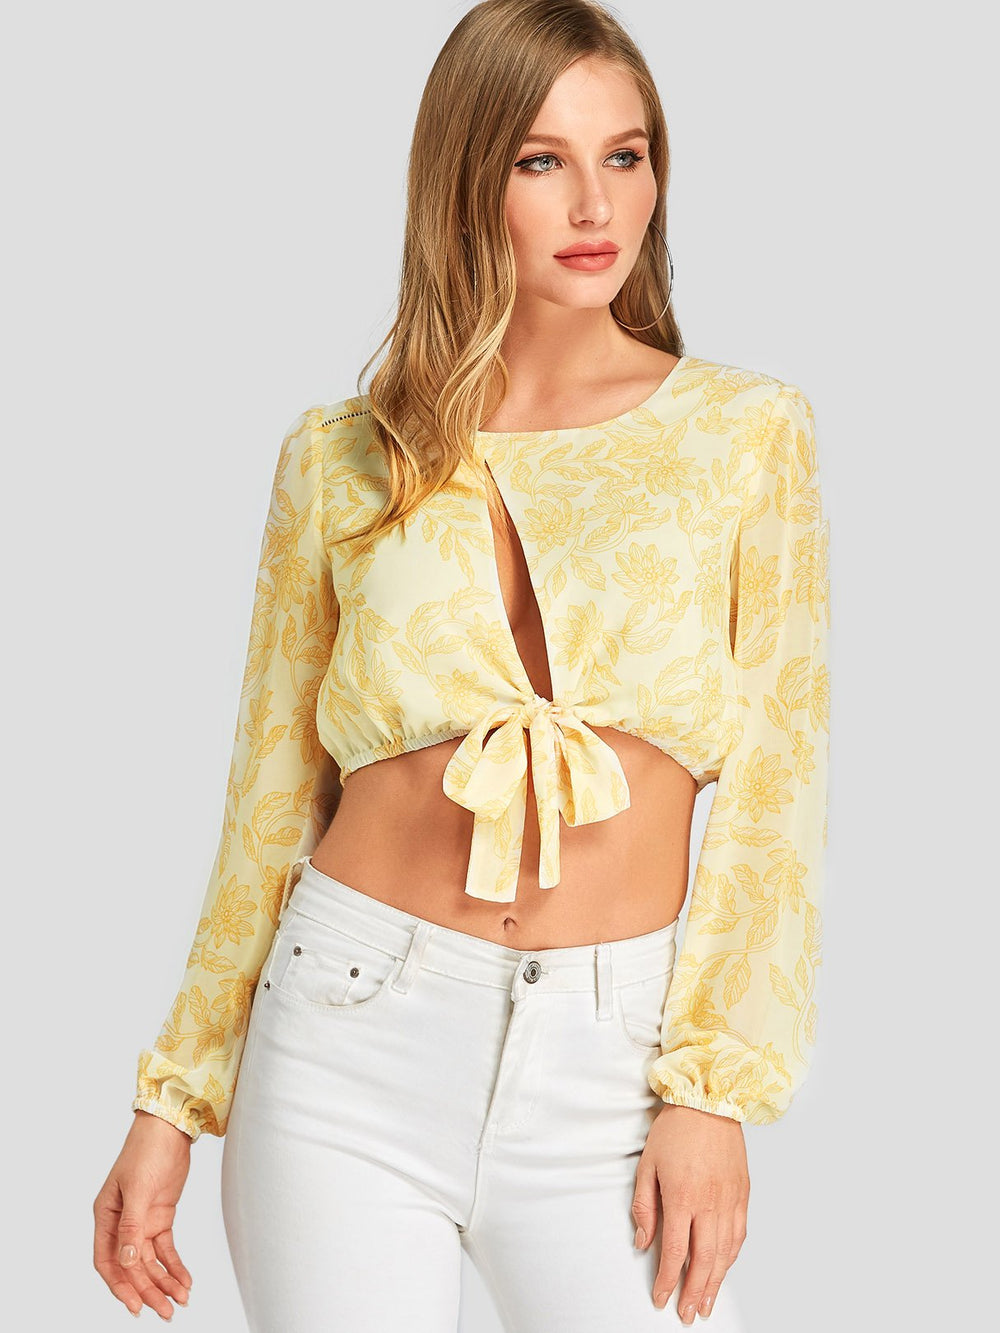 Round Neck Floral Print Cut Out Yellow Crop Top